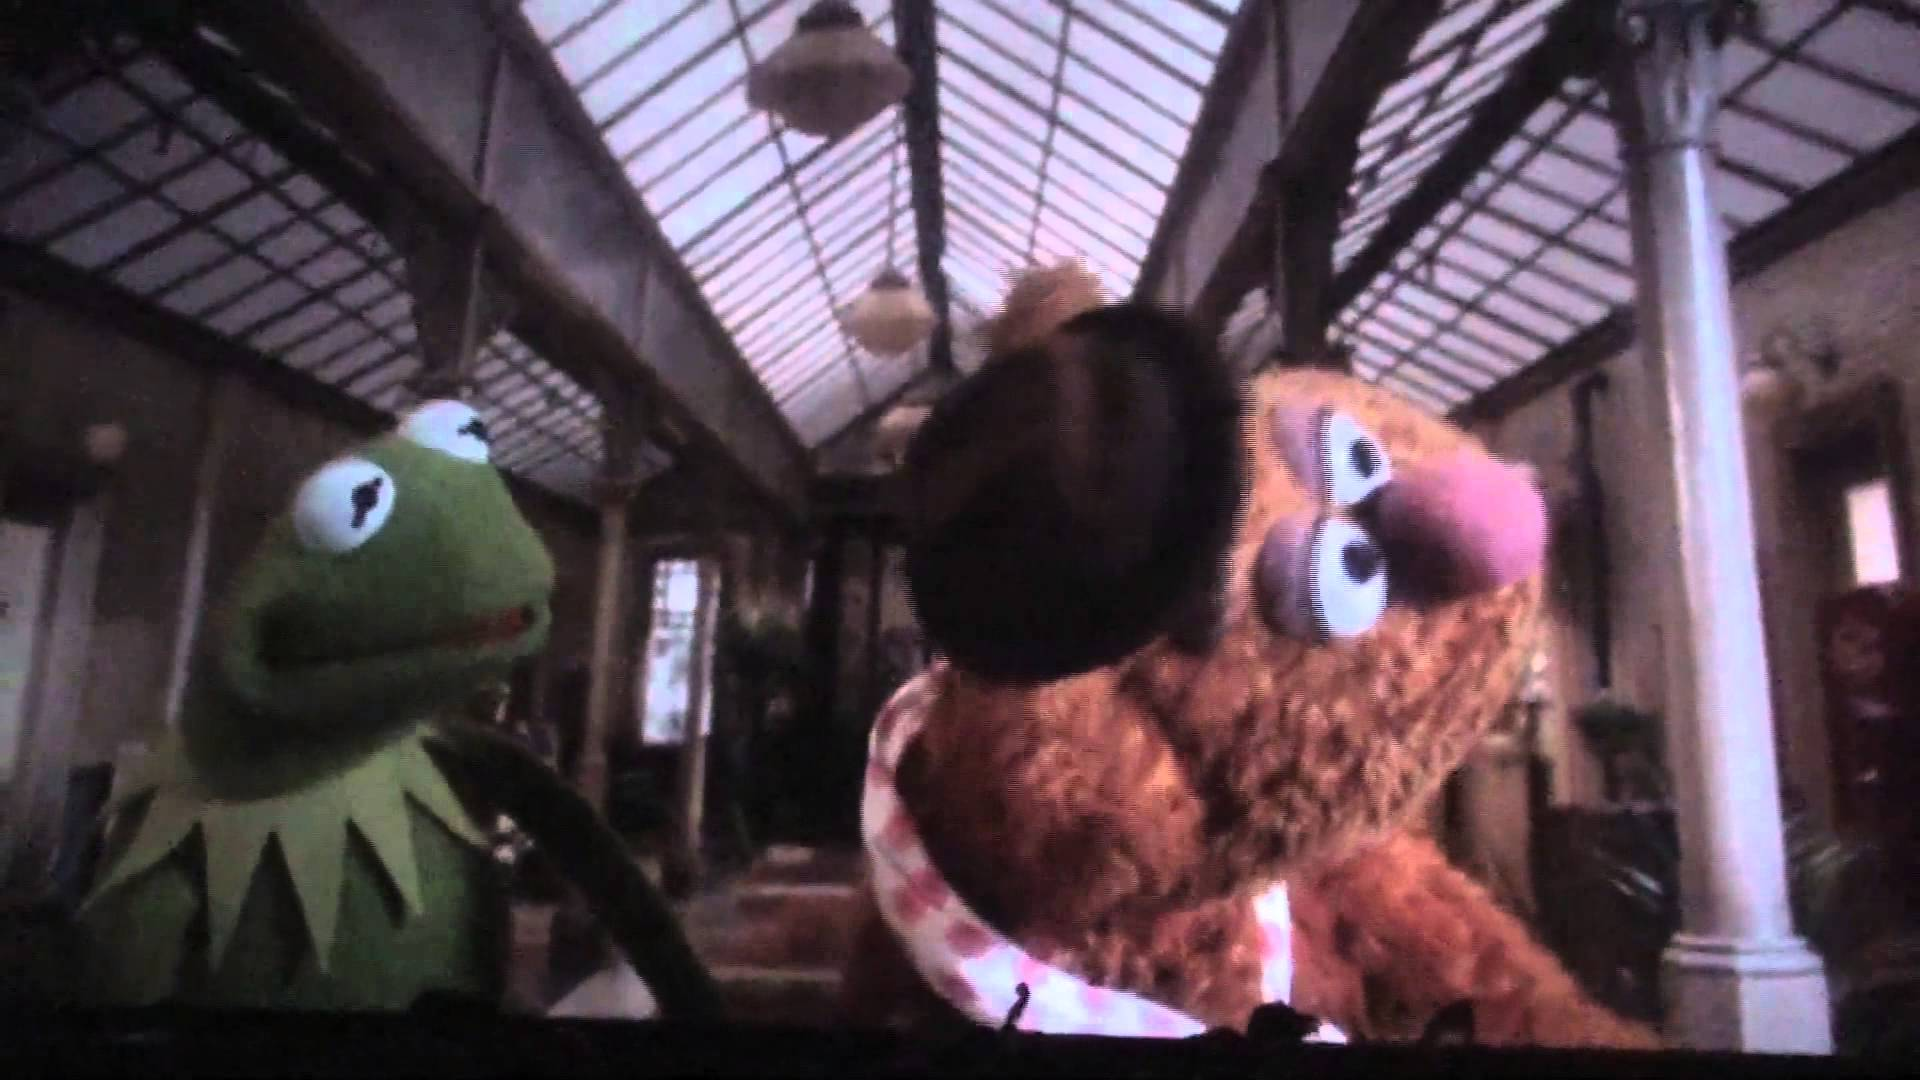 muppets looking